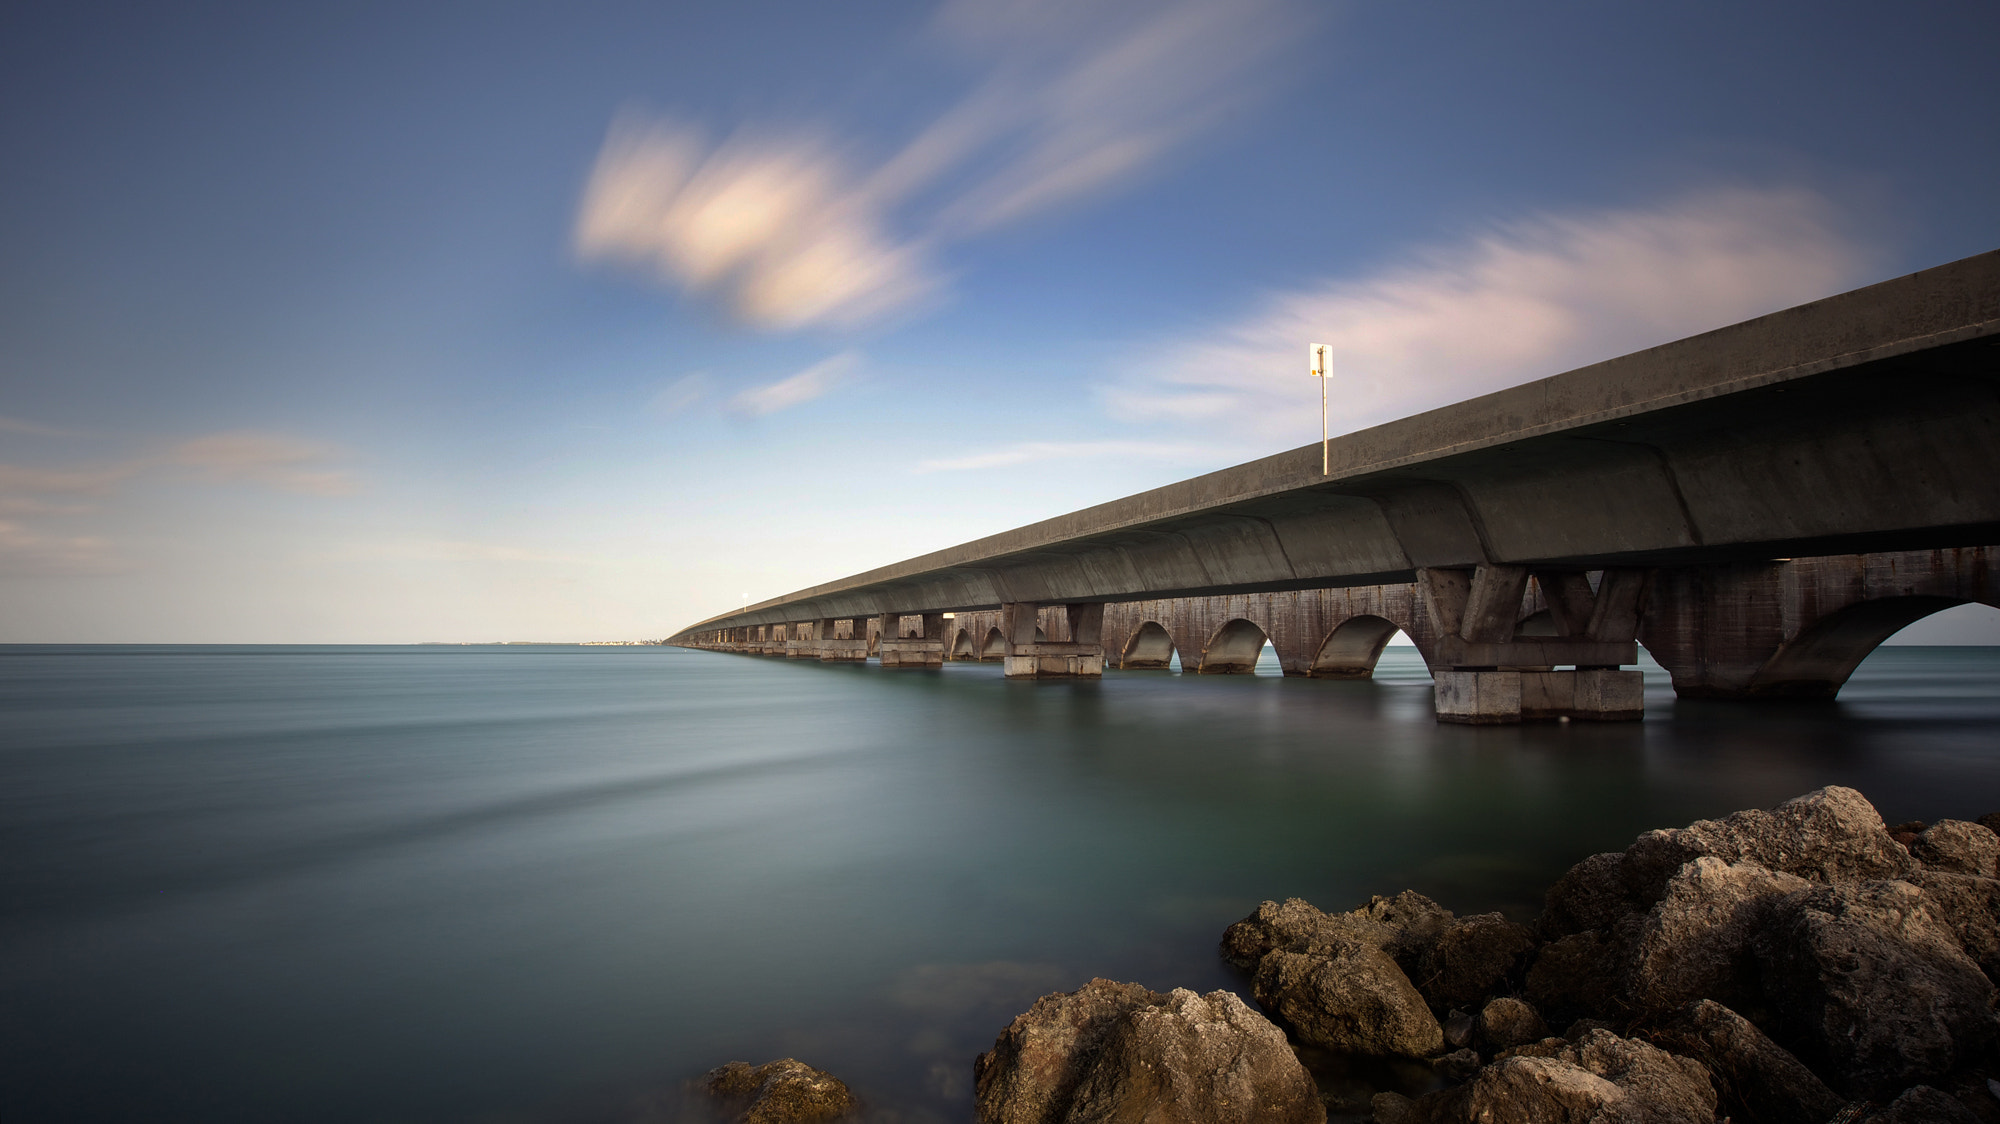 Photograph Endless Bridge by Thomas Fliegner on 500px